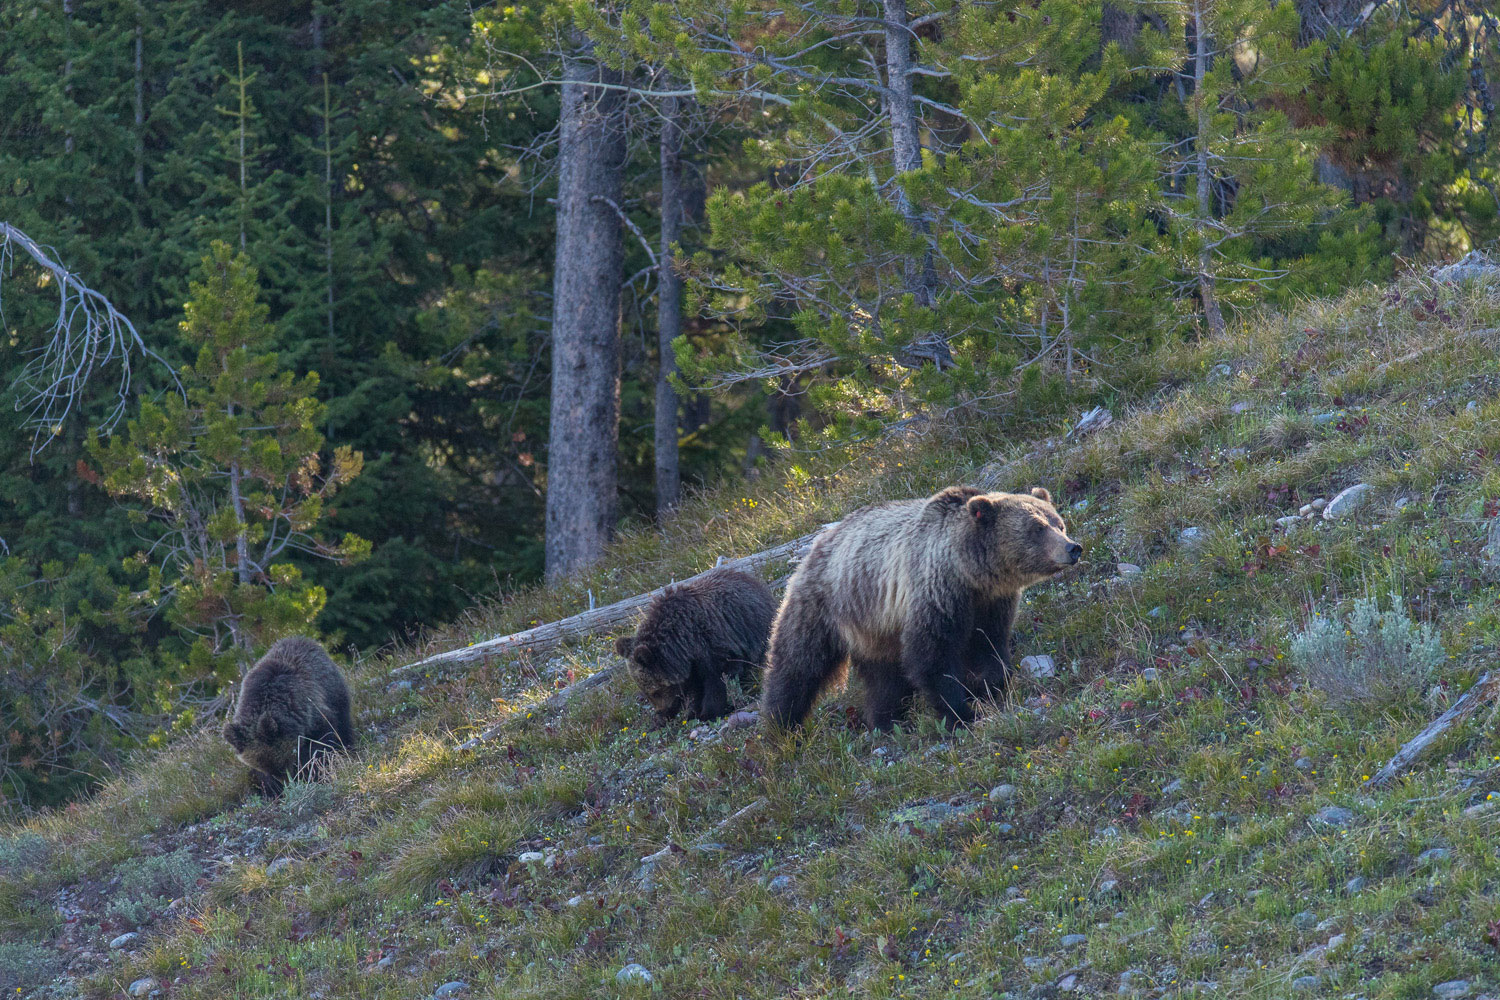 blondie, grizzly, bear, grand teton, photo, image, spring, 2018, Tetons, photo